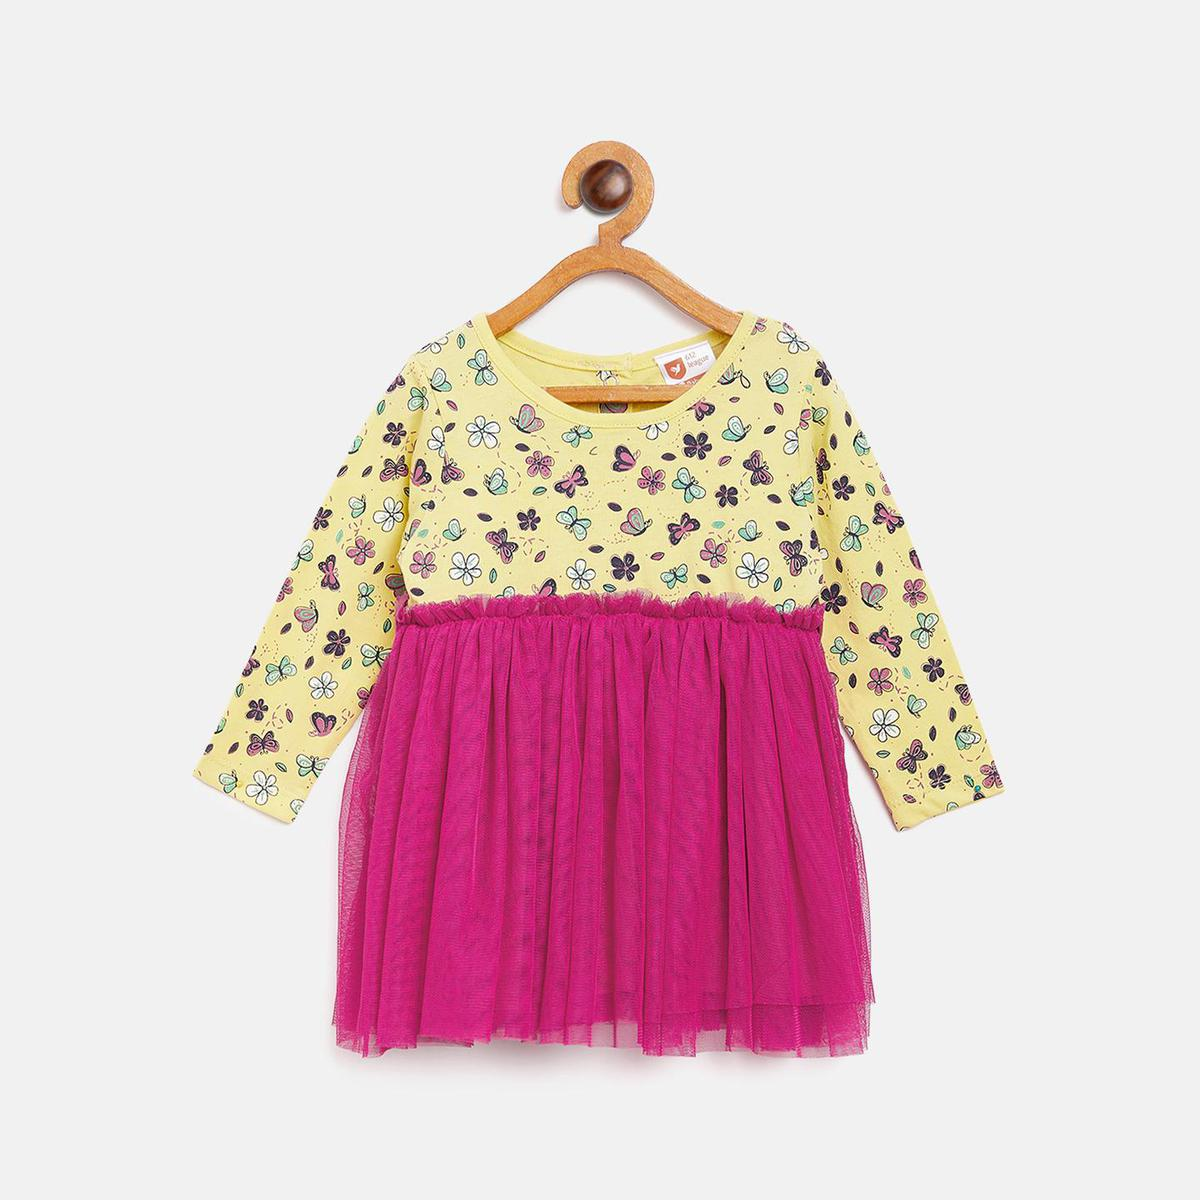 612 League - Yellow Colored Mix N Match Dress For Baby Girls